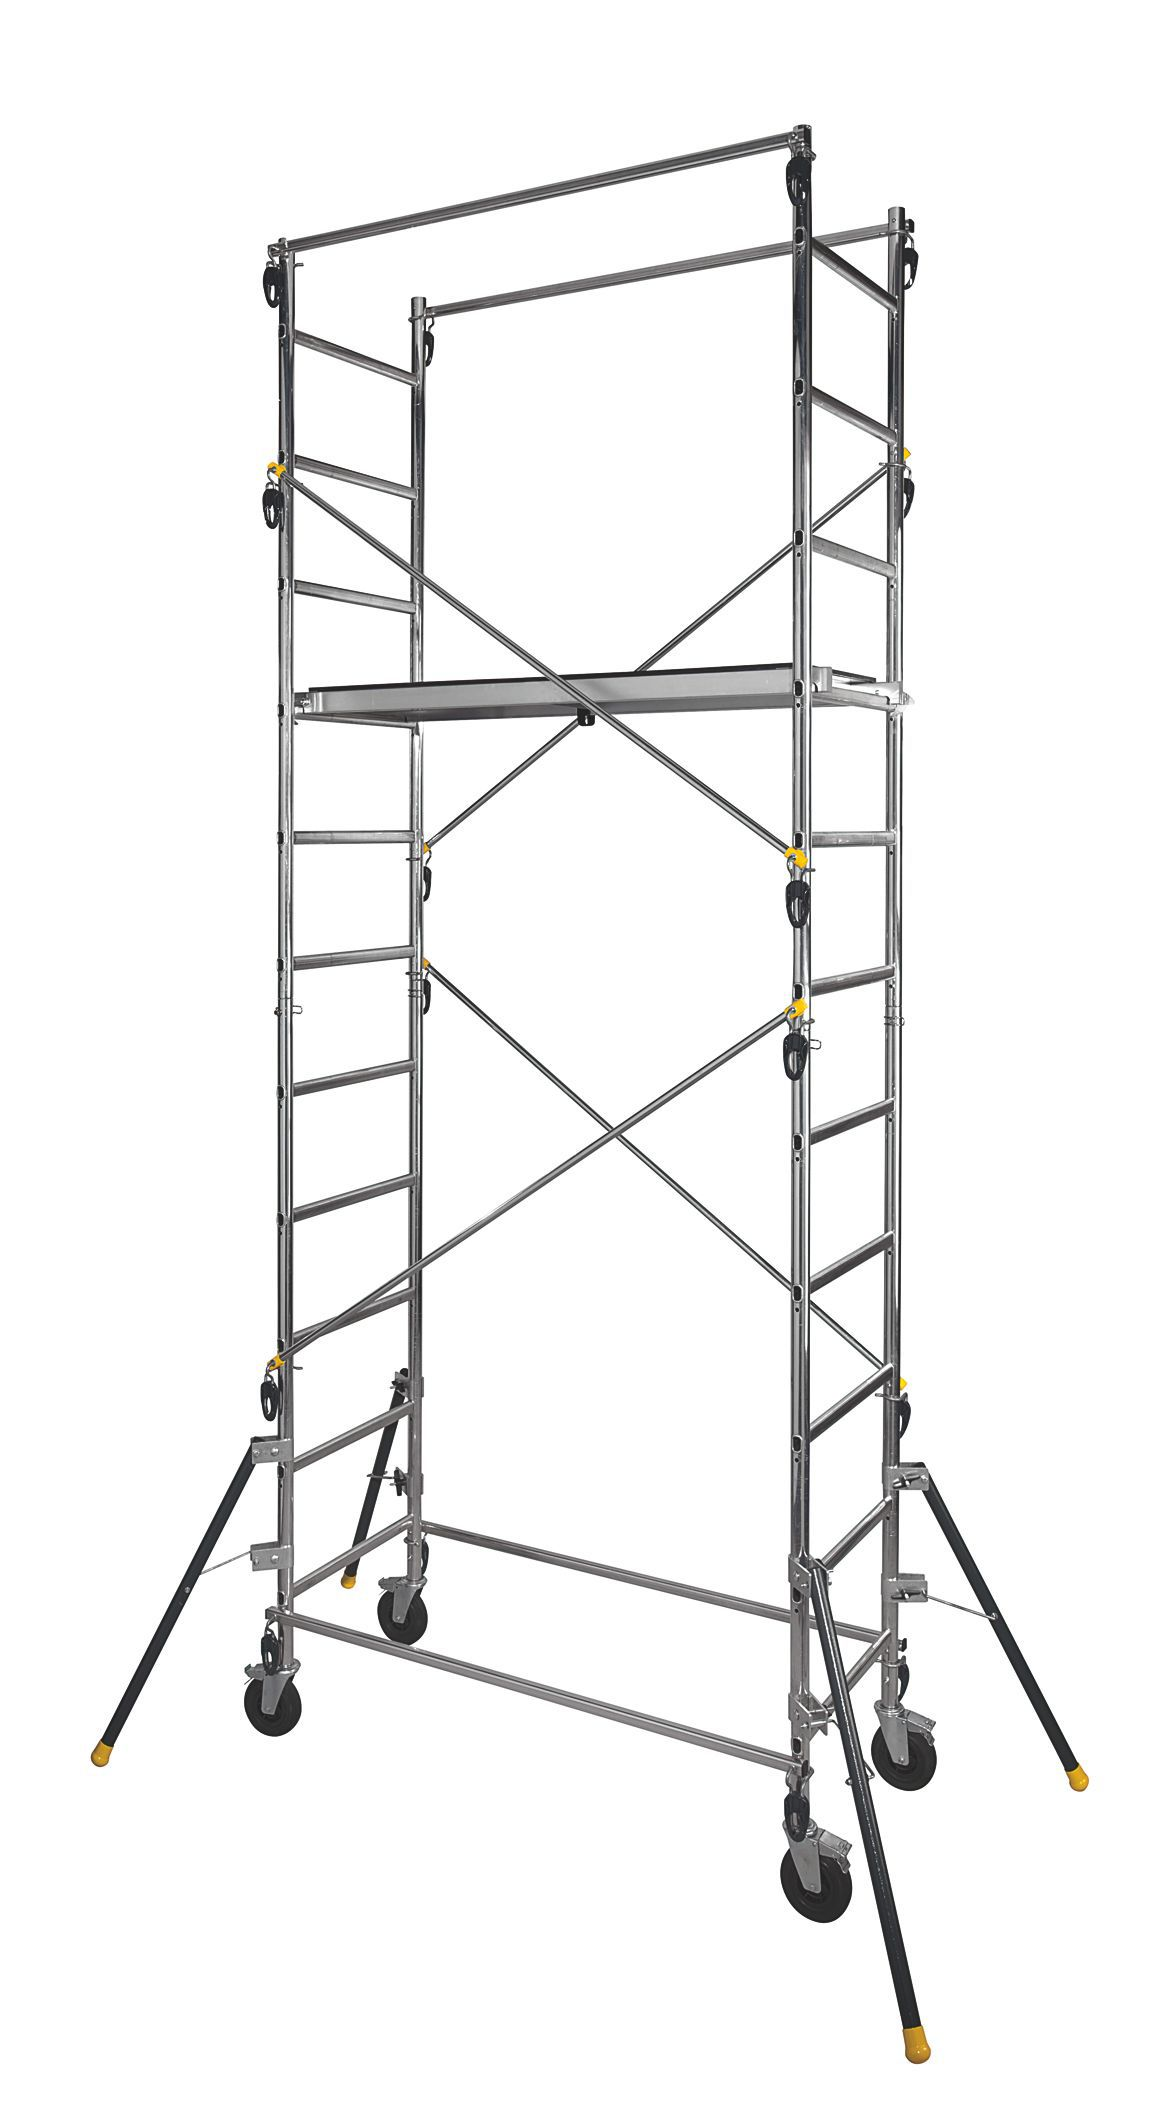 Centaure Quad Up Scaffold Tower H 4500mm Departments